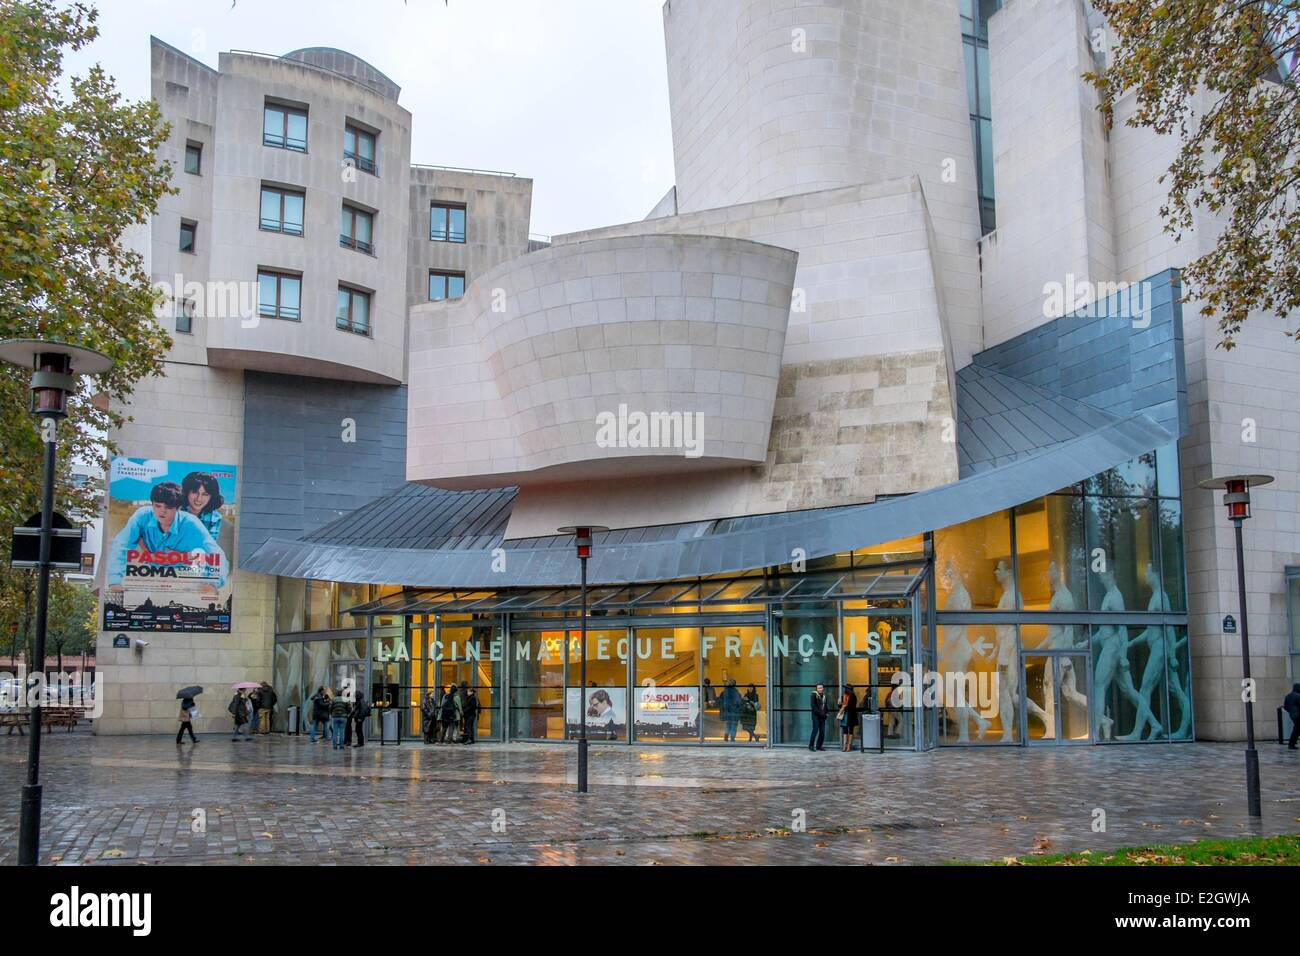 France Paris French Cinematheque (former American Center) by architect Frank O. Gehry in Parc de Bercy - Stock Image